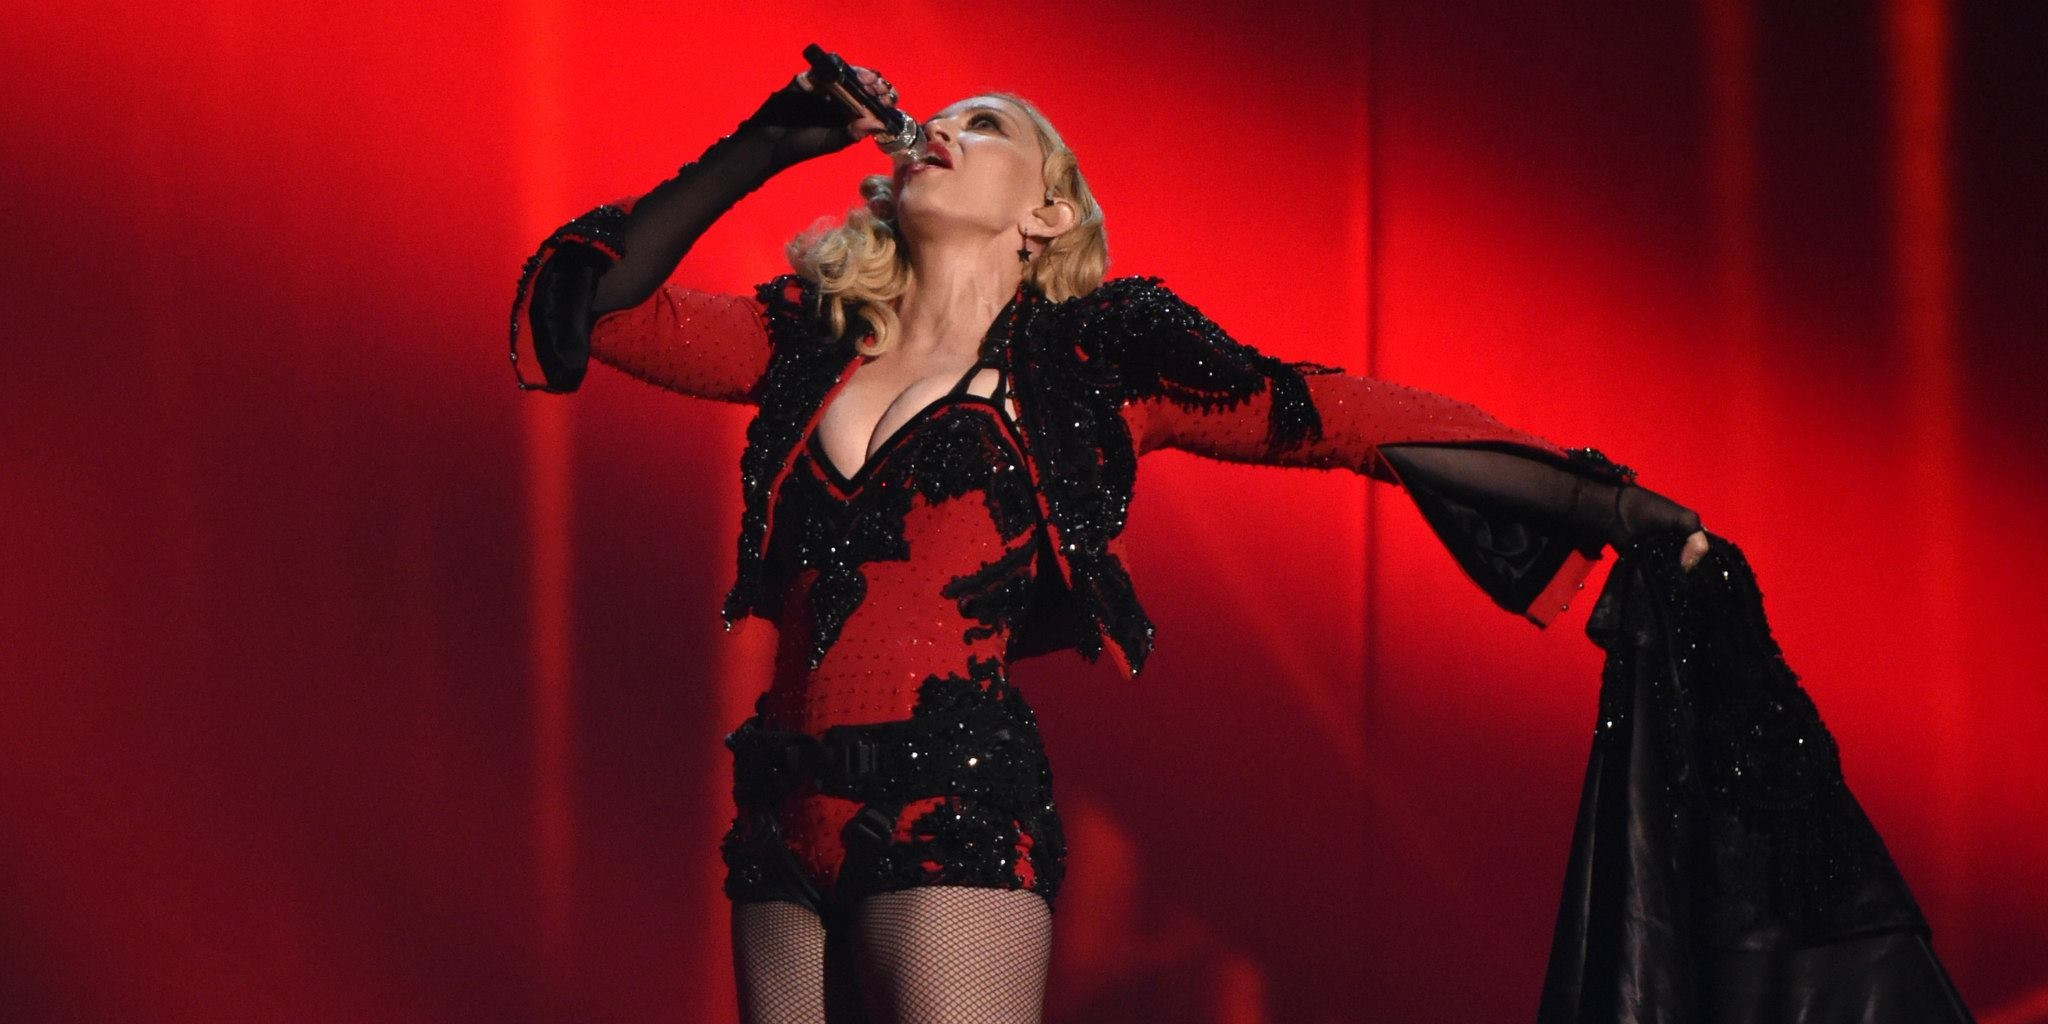 Singapore archbishop isn't happy about Madonna's show next week